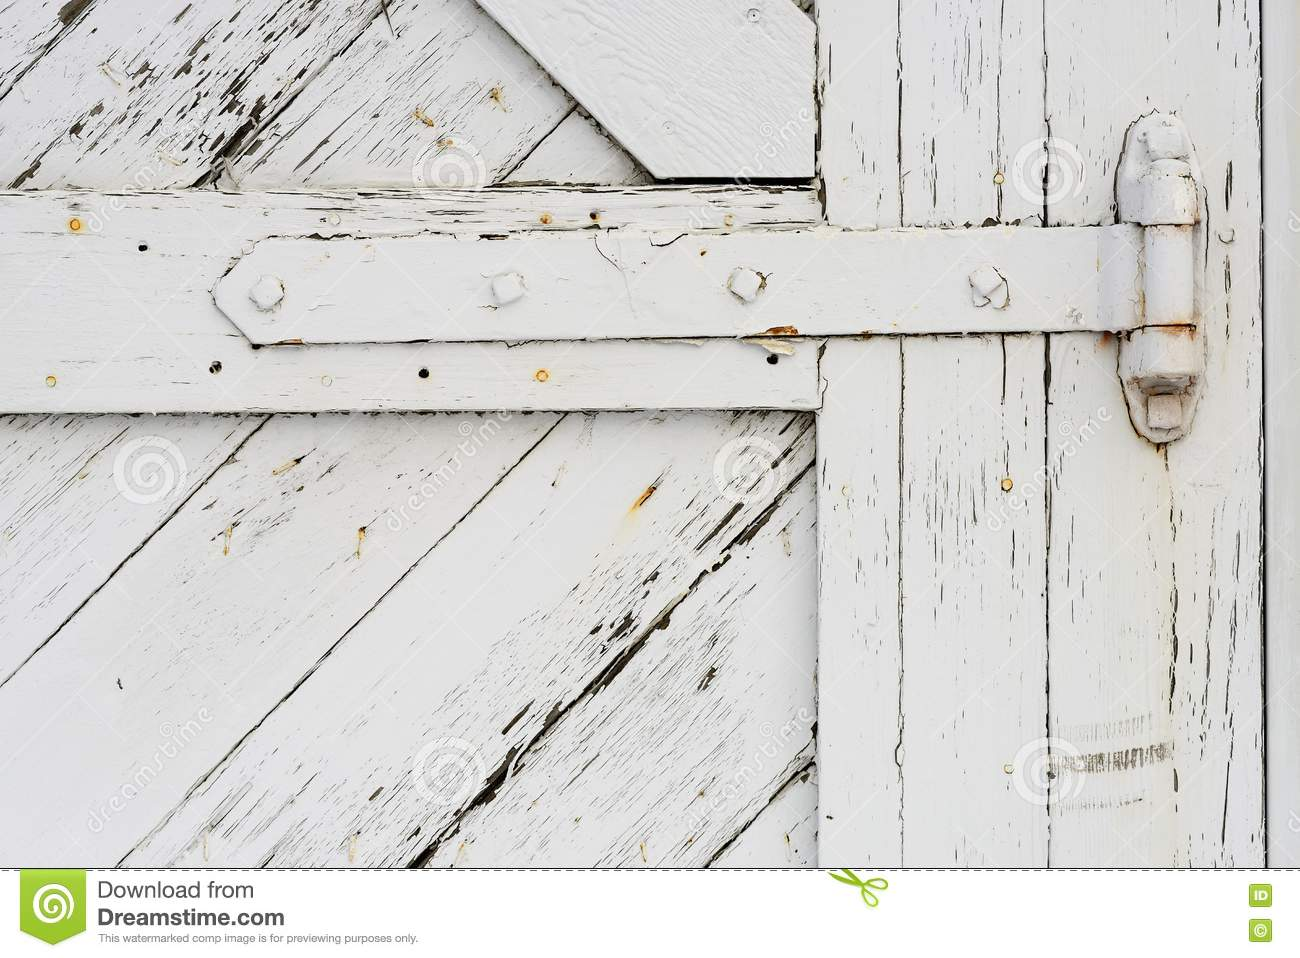 A White Painted Hinge To An Old Barn Door.